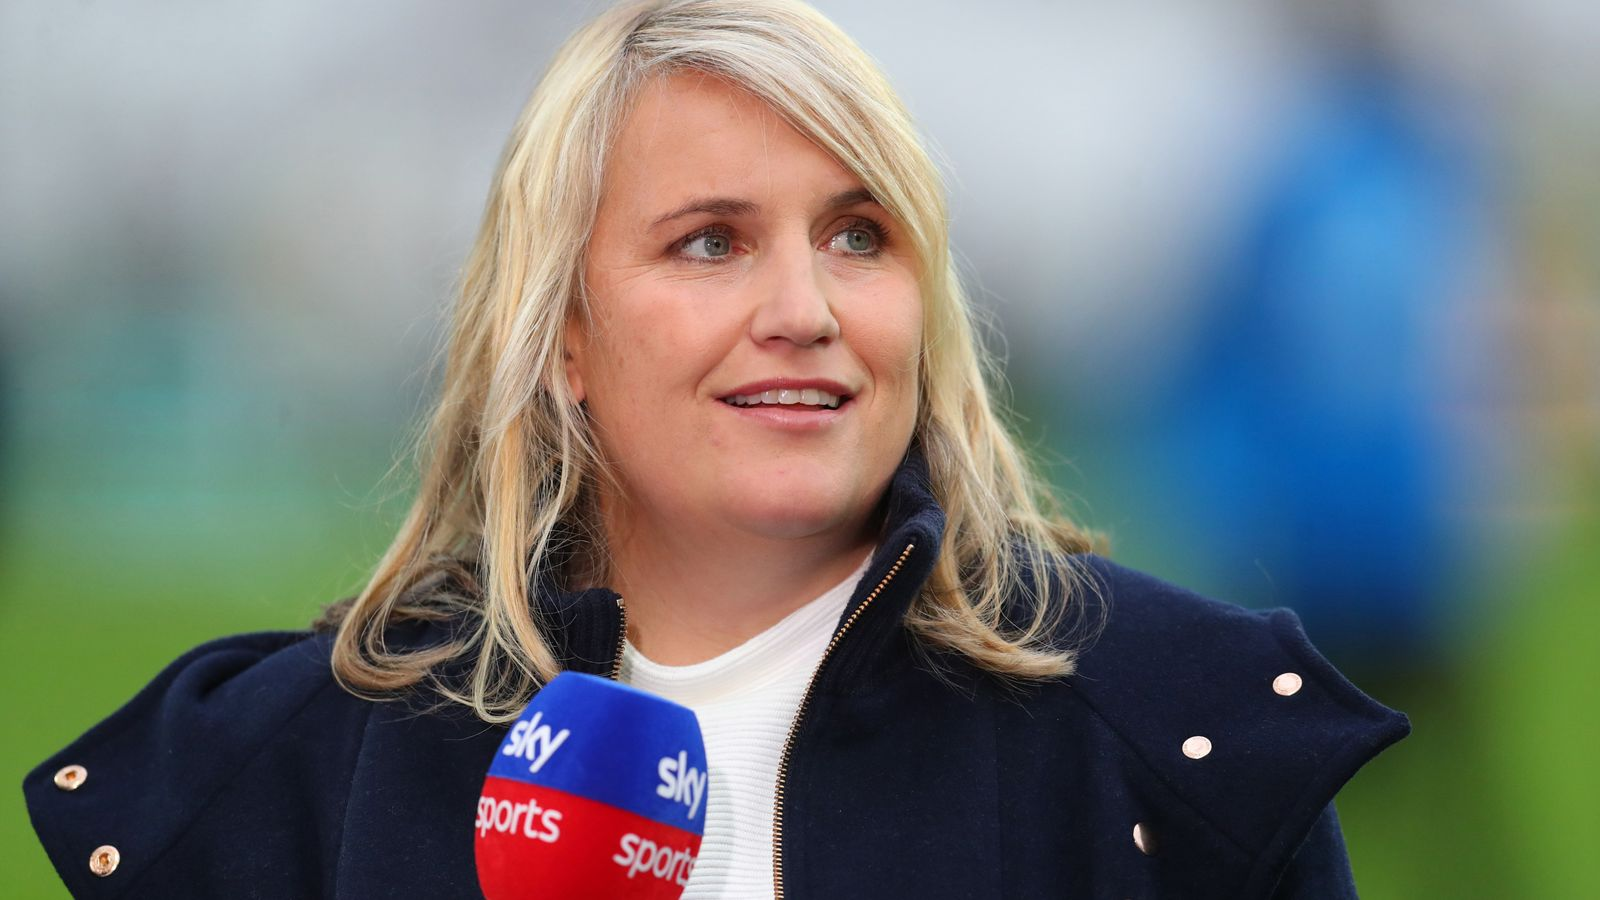 Emma Hayes says Chelsea Women bringing 'taboo' menstrual cycle subject into open will be helpful